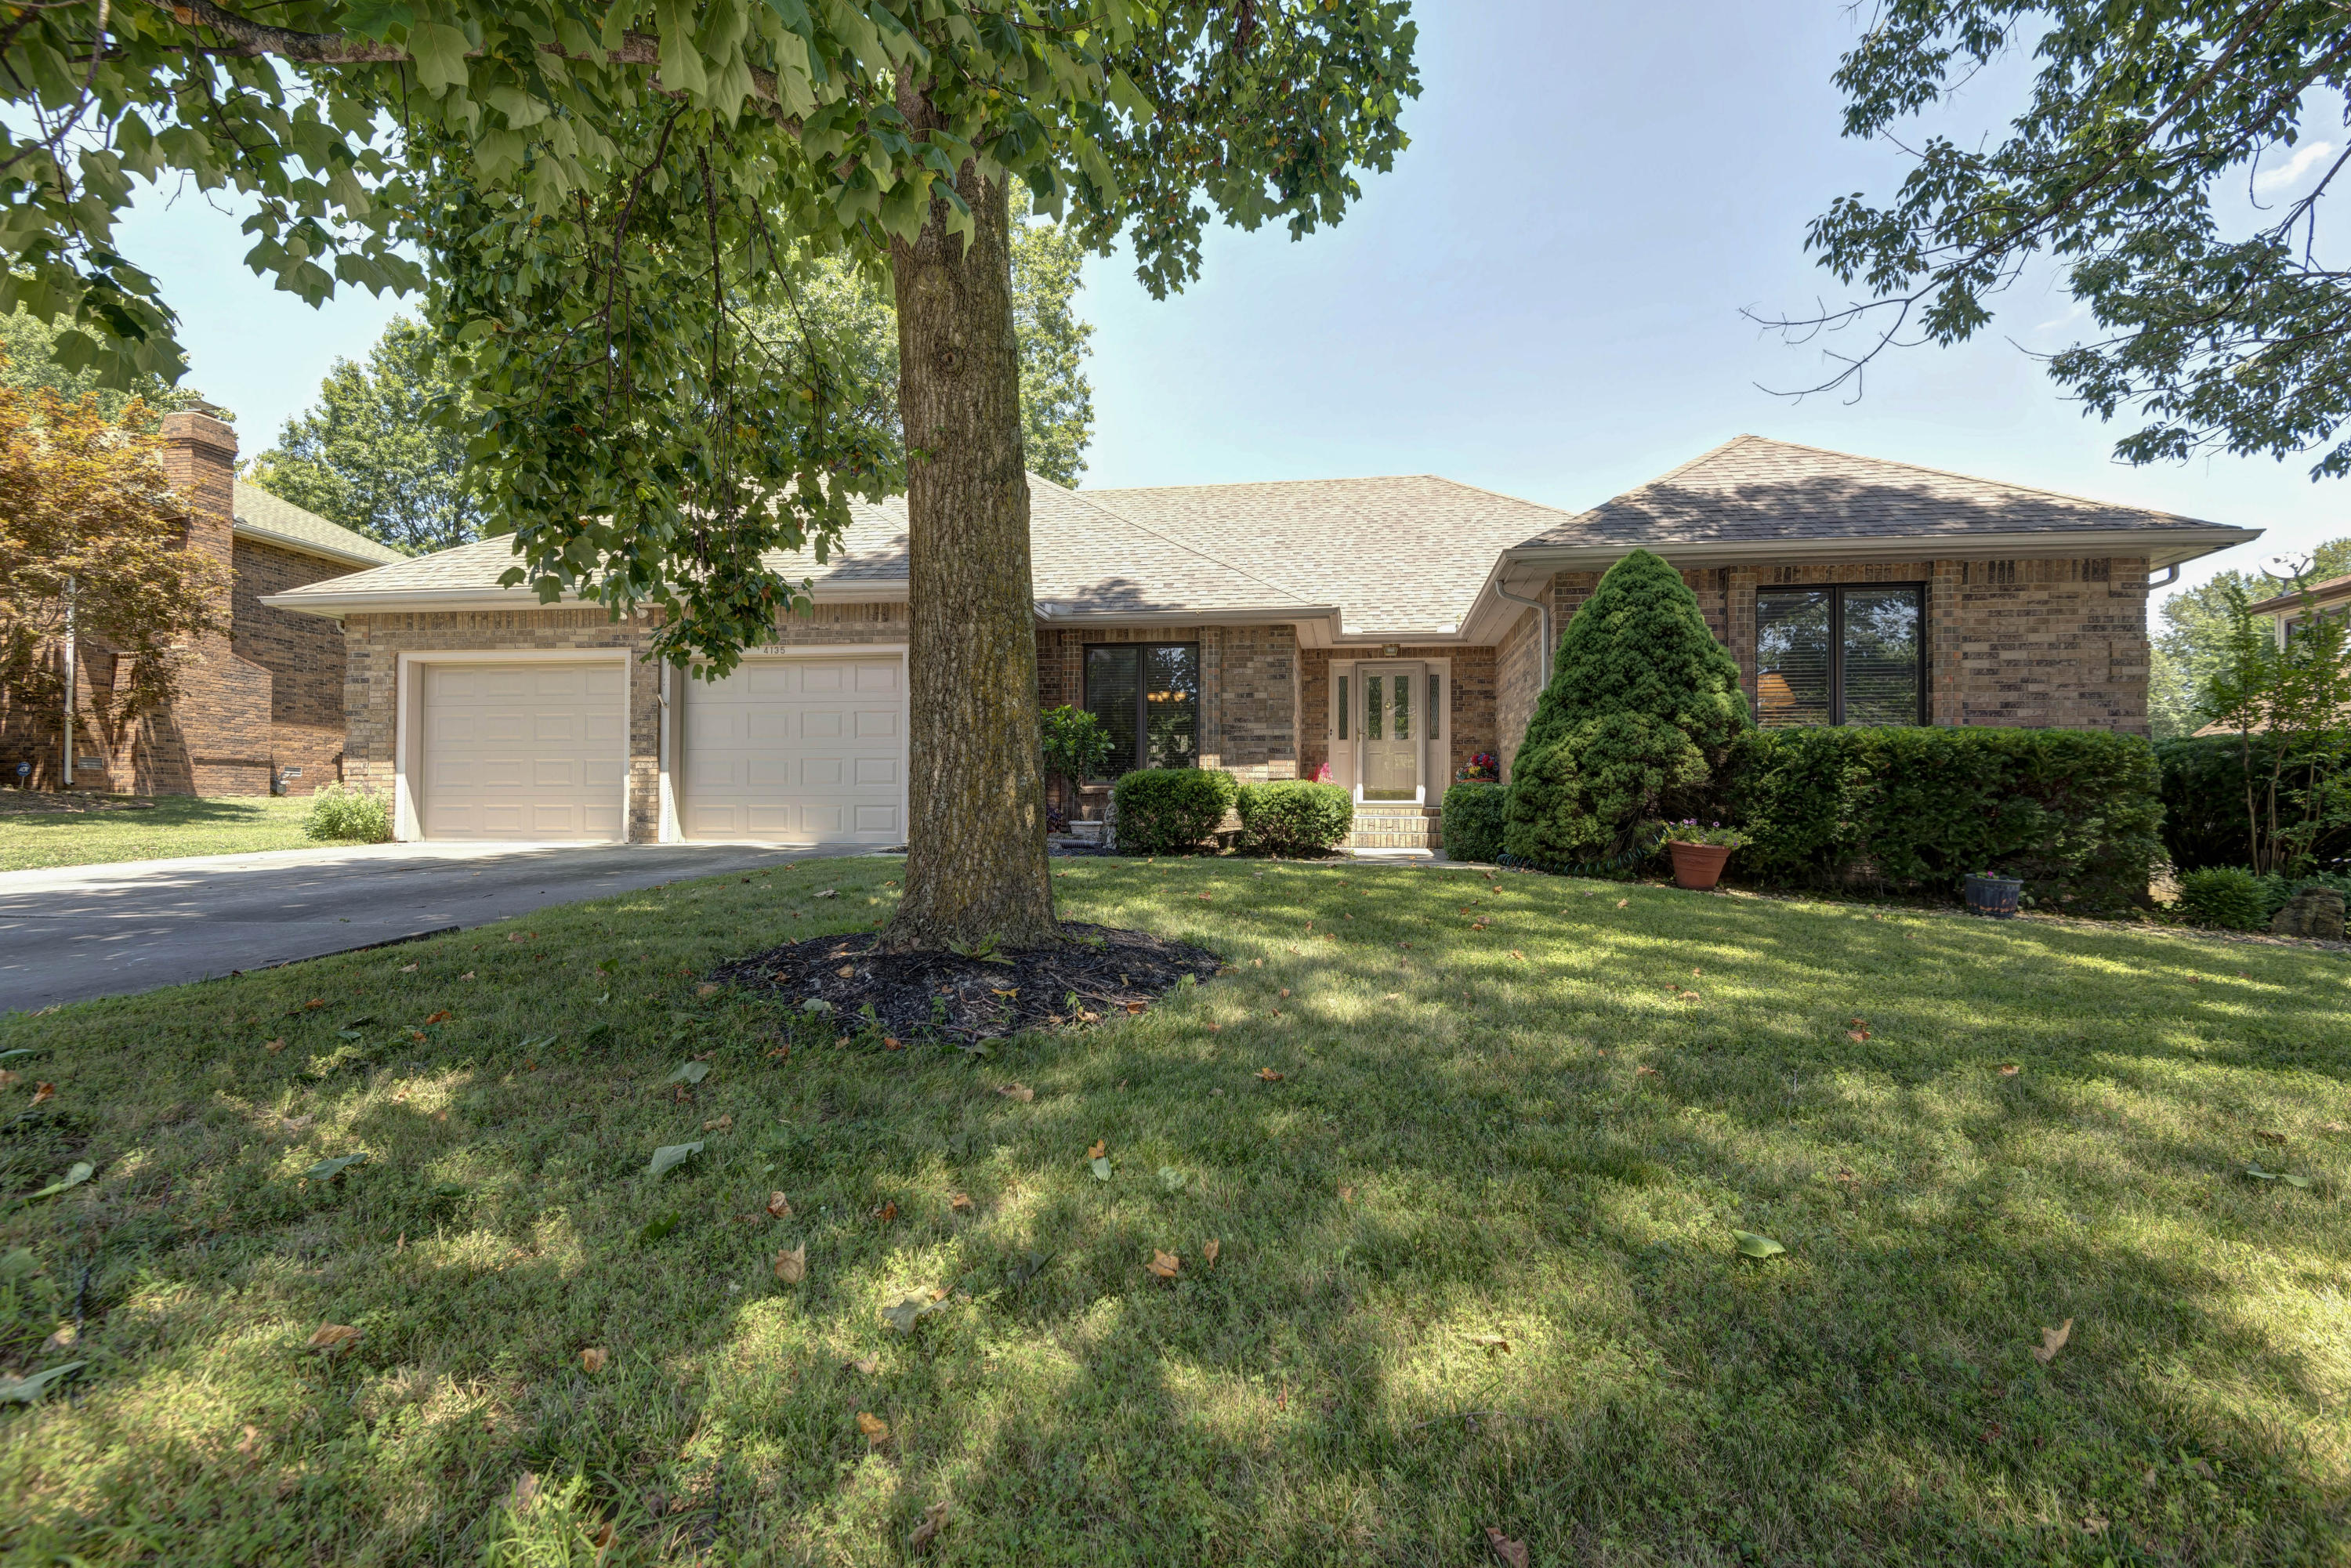 4135 East Stanford Springfield, MO 65809